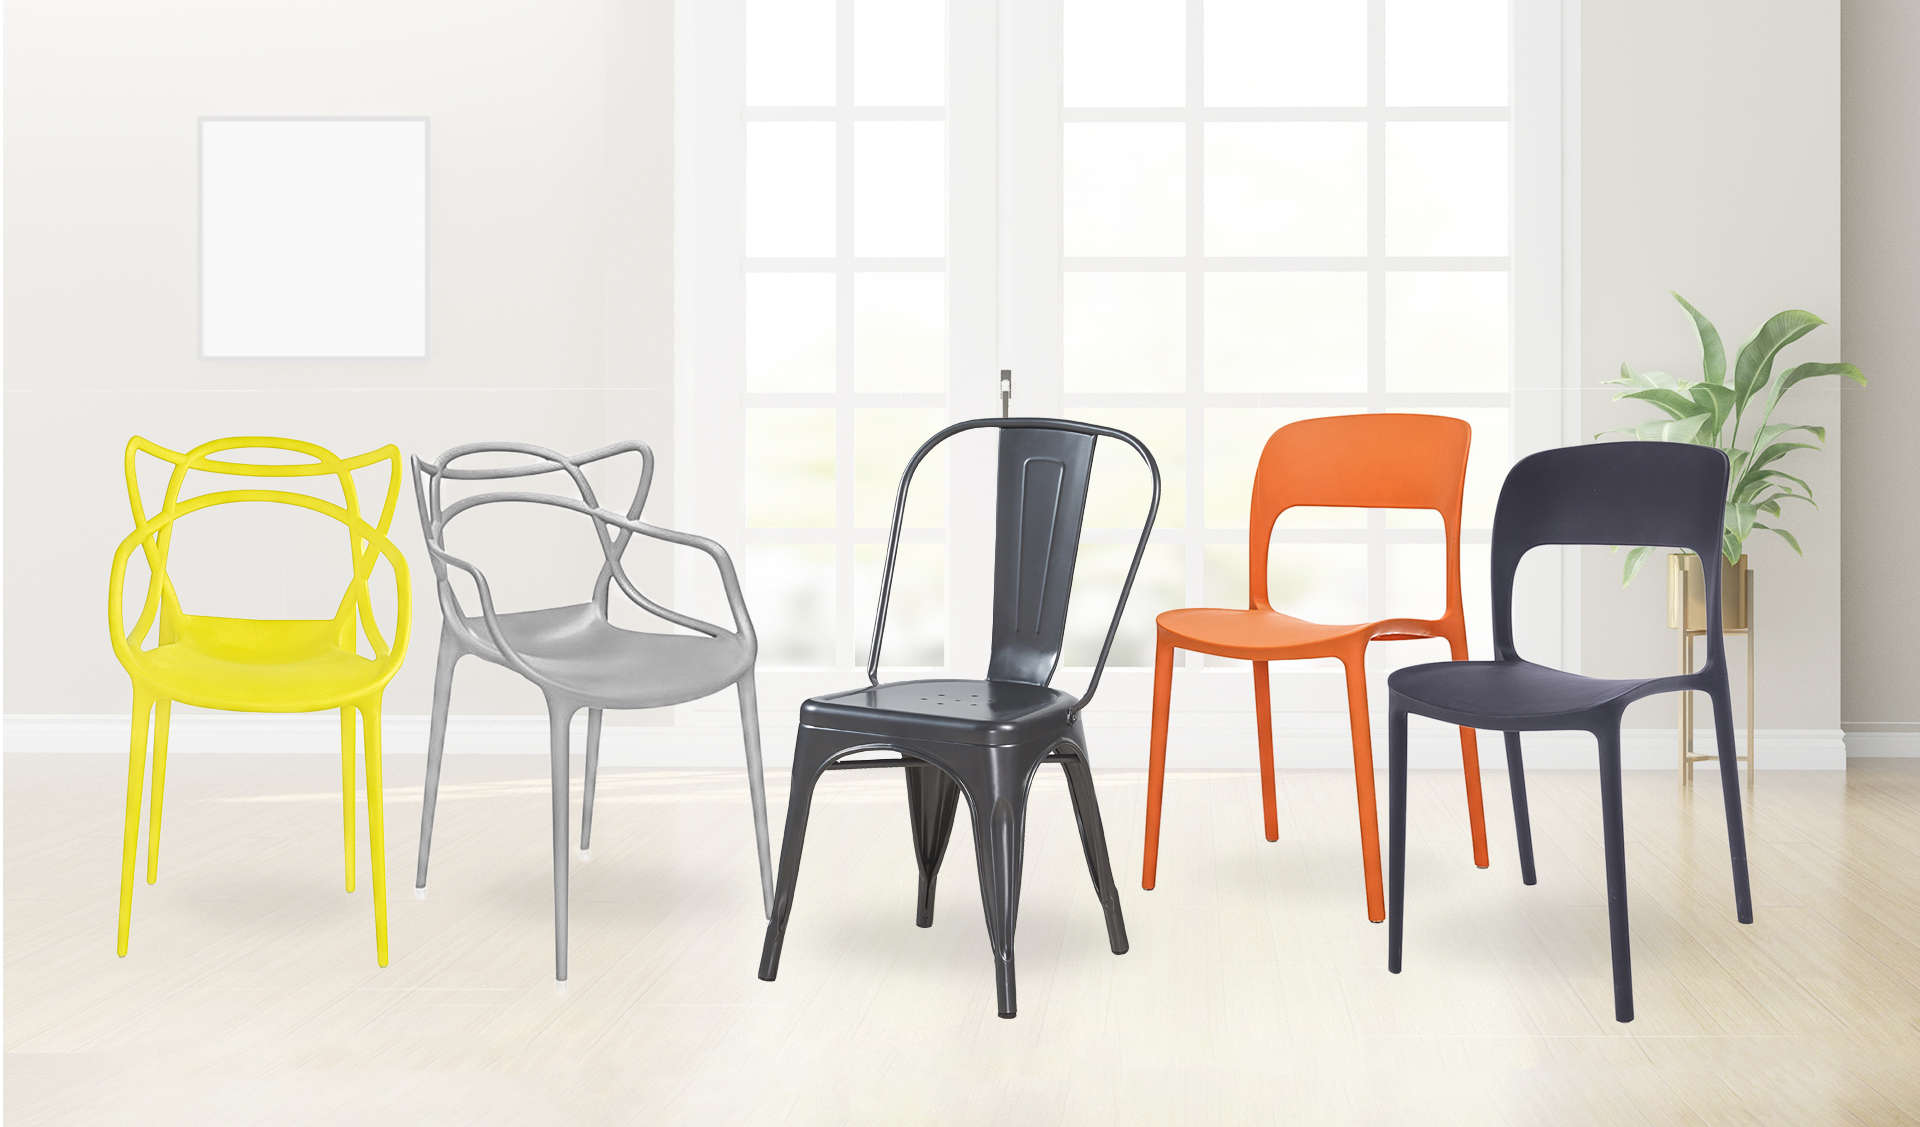 Dining & Restaurant Chairs - Tianjin Kingnod Furniture Co., Ltd.